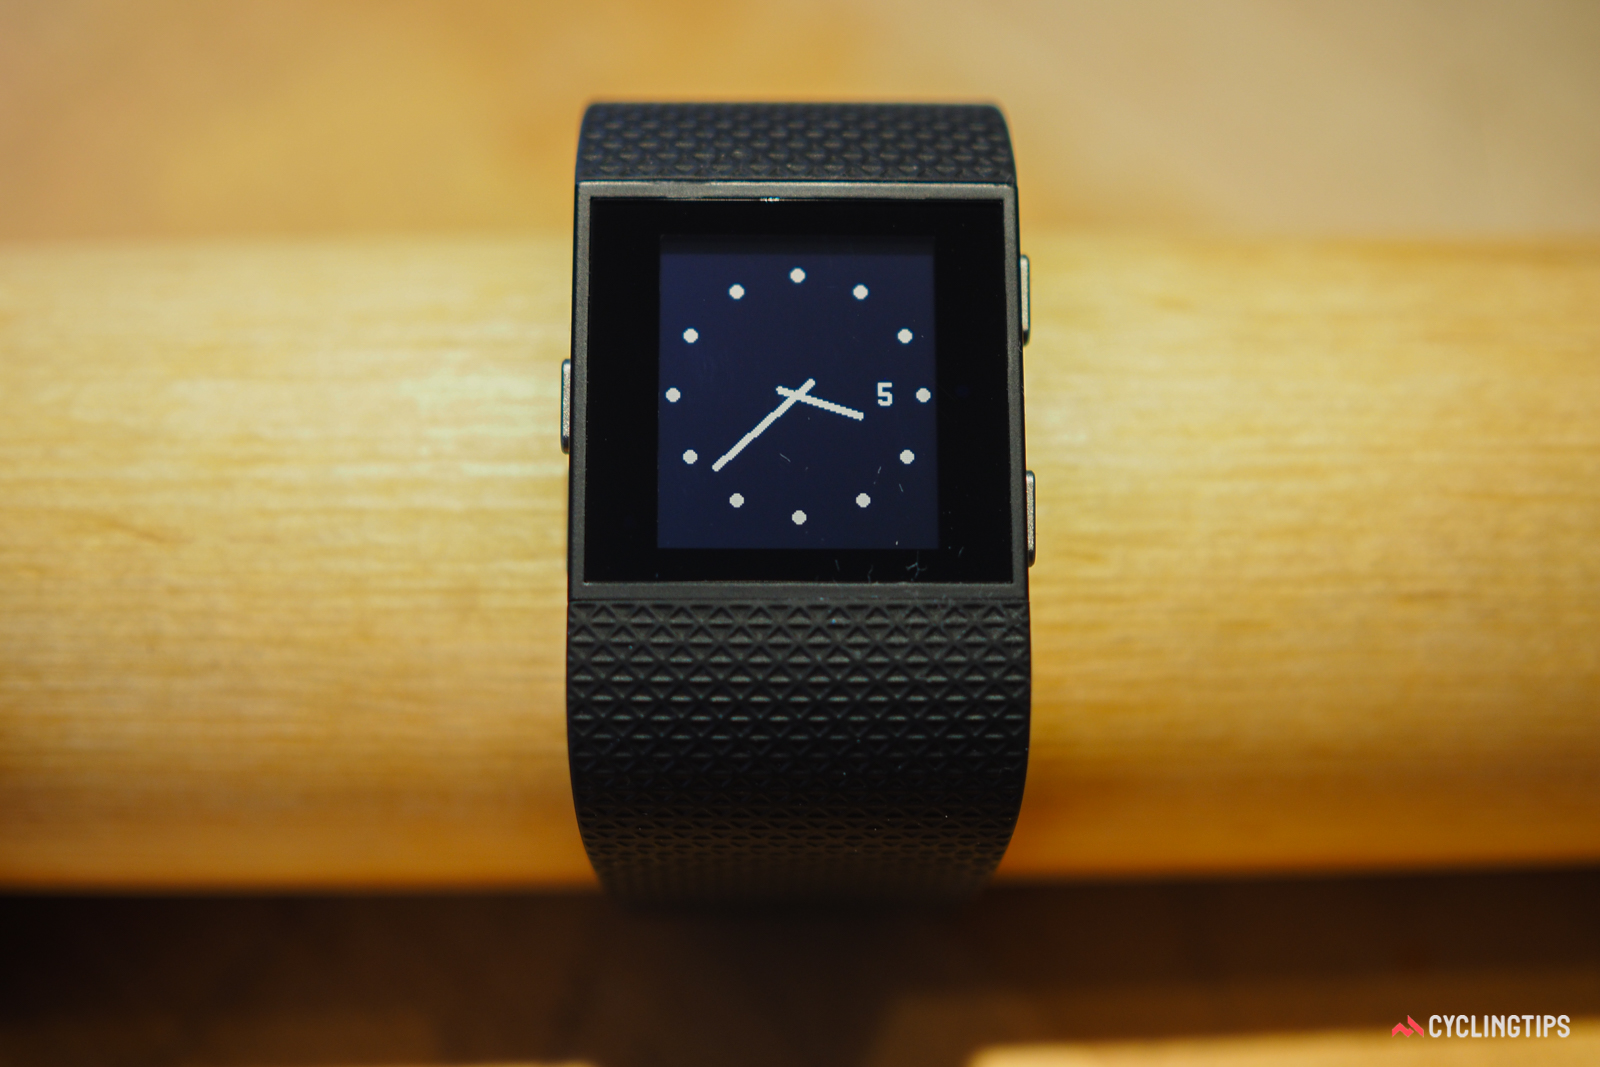 Both the Fitbit Surge and Garmin Vivoactive HR can be customized with different watch faces. Either way, though, there's no escaping the techy aesthetics.